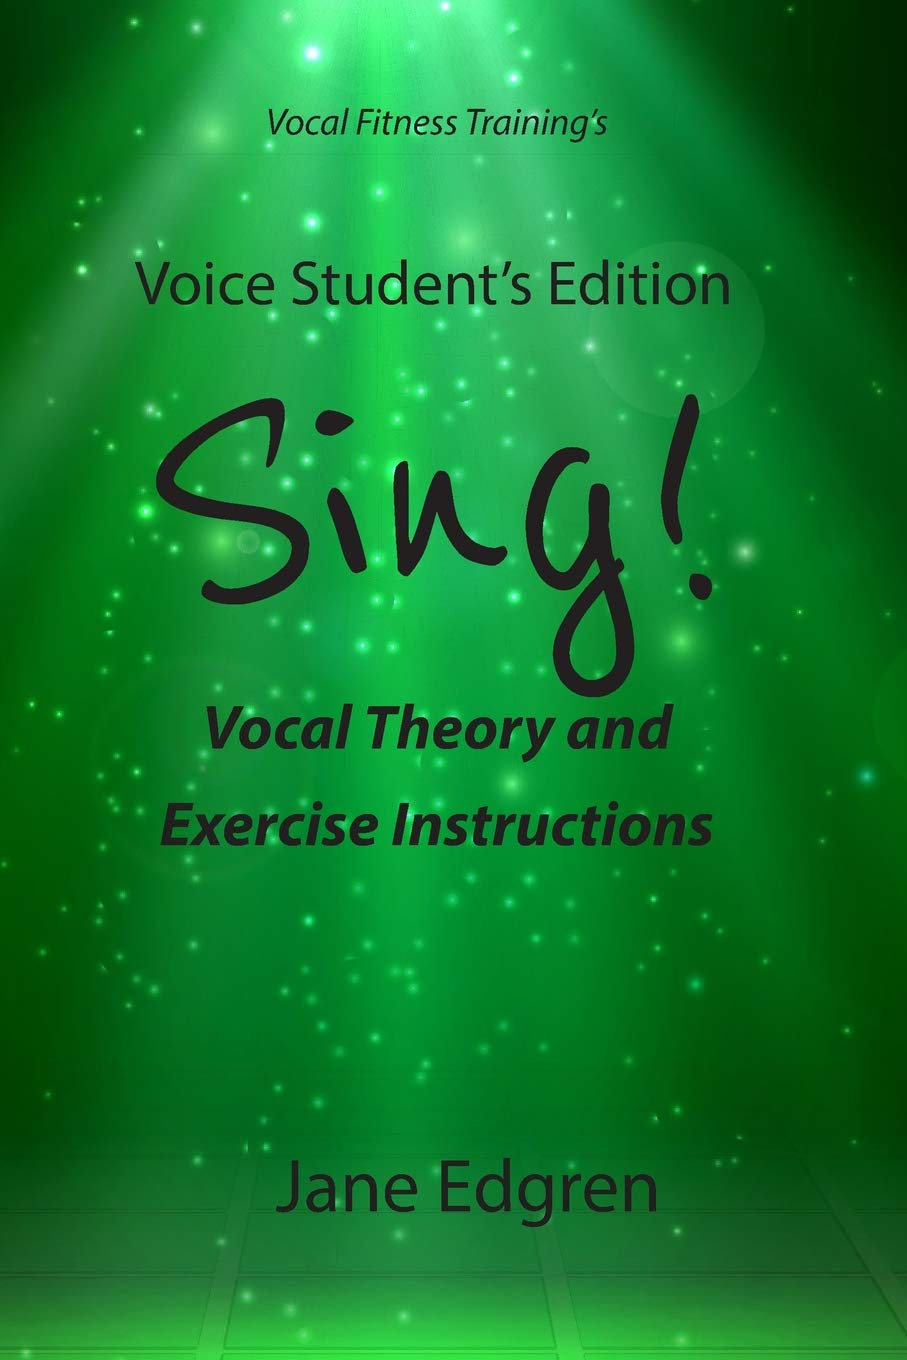 Voice Student S Edition Sing Vocal Theory And Exercise Instructions Online Audio Video And Practice Plan Access Edgren Jane 9781797966410 Amazon Com Books